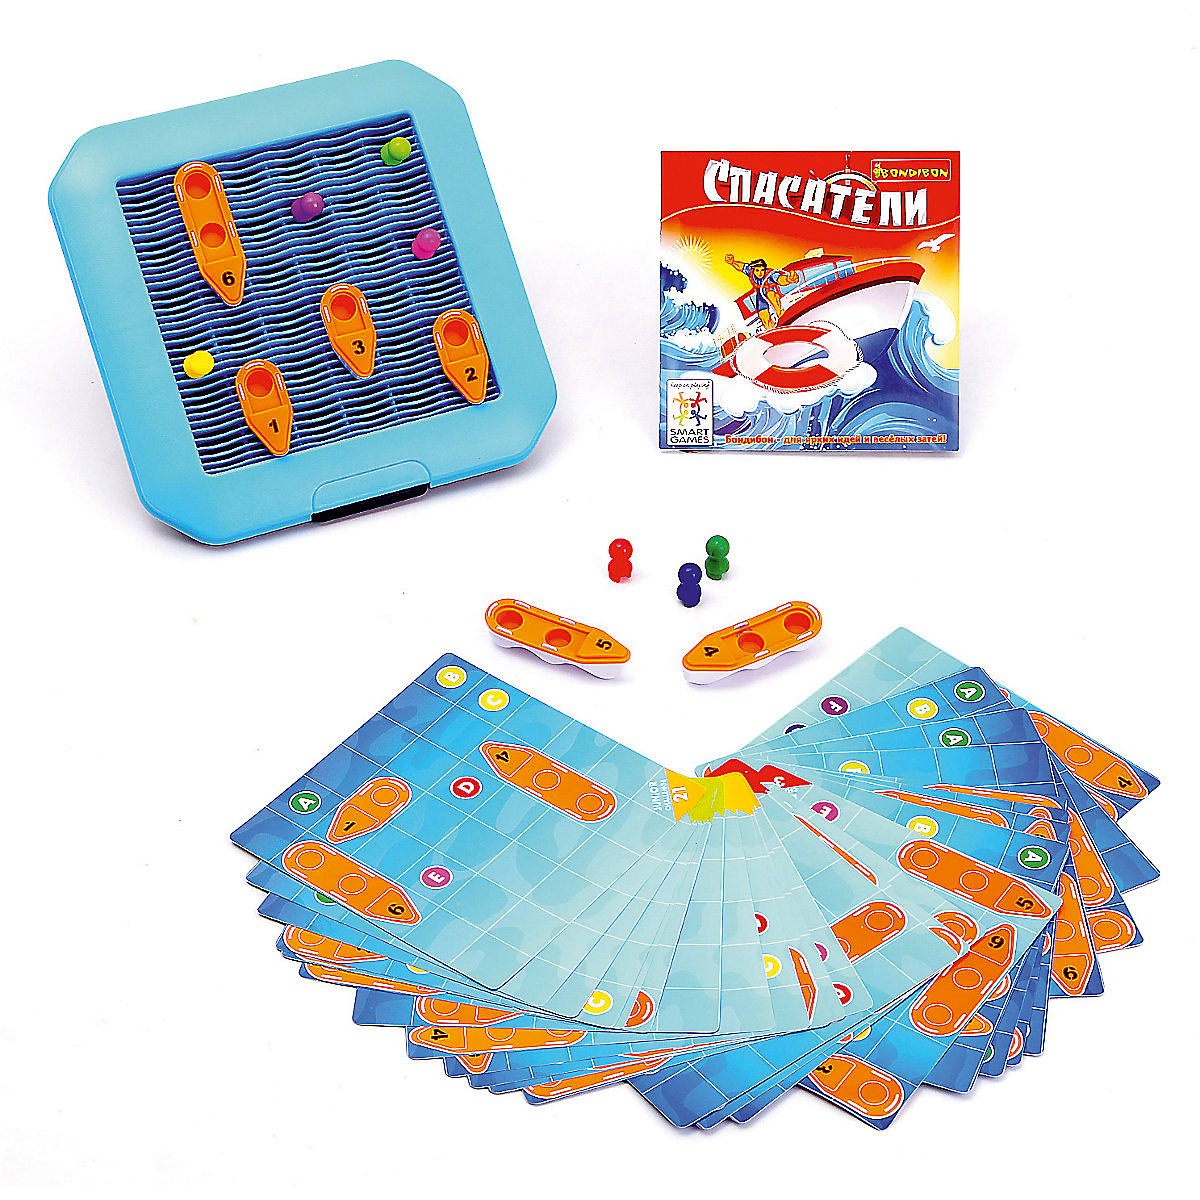 BONDIBON Party Games 7419998 educational toys puzzle game monopoly toy 2017 high quality mixed colors eva puzzle building toy for kids children educational educational toys christmas gifts